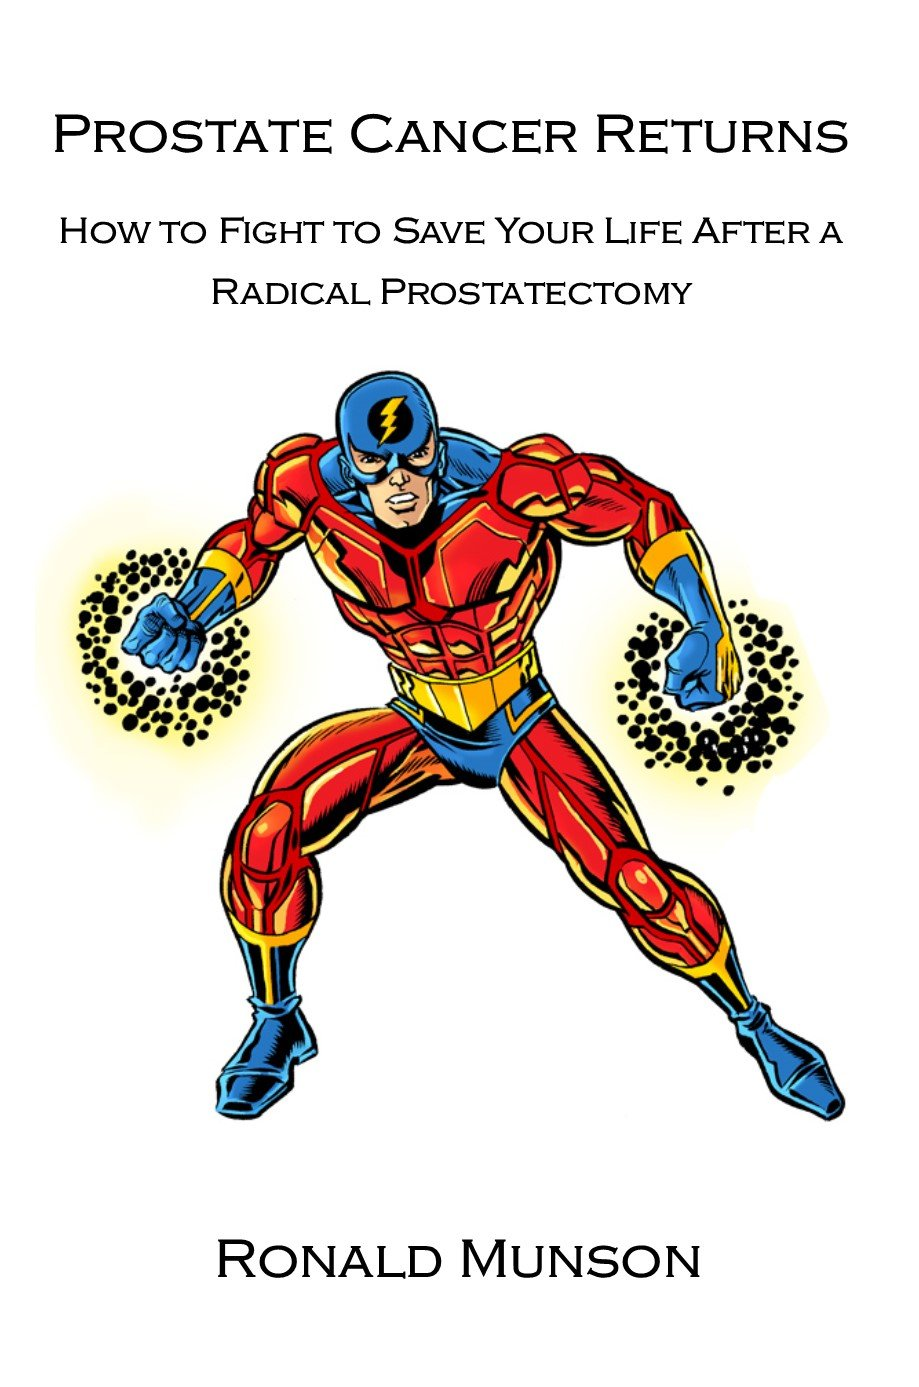 Image OfPROSTATE CANCER RETURNS: How To Fight To Save Your Life When You Have A Biochemical Recurrence After A Radical Prostatectomy